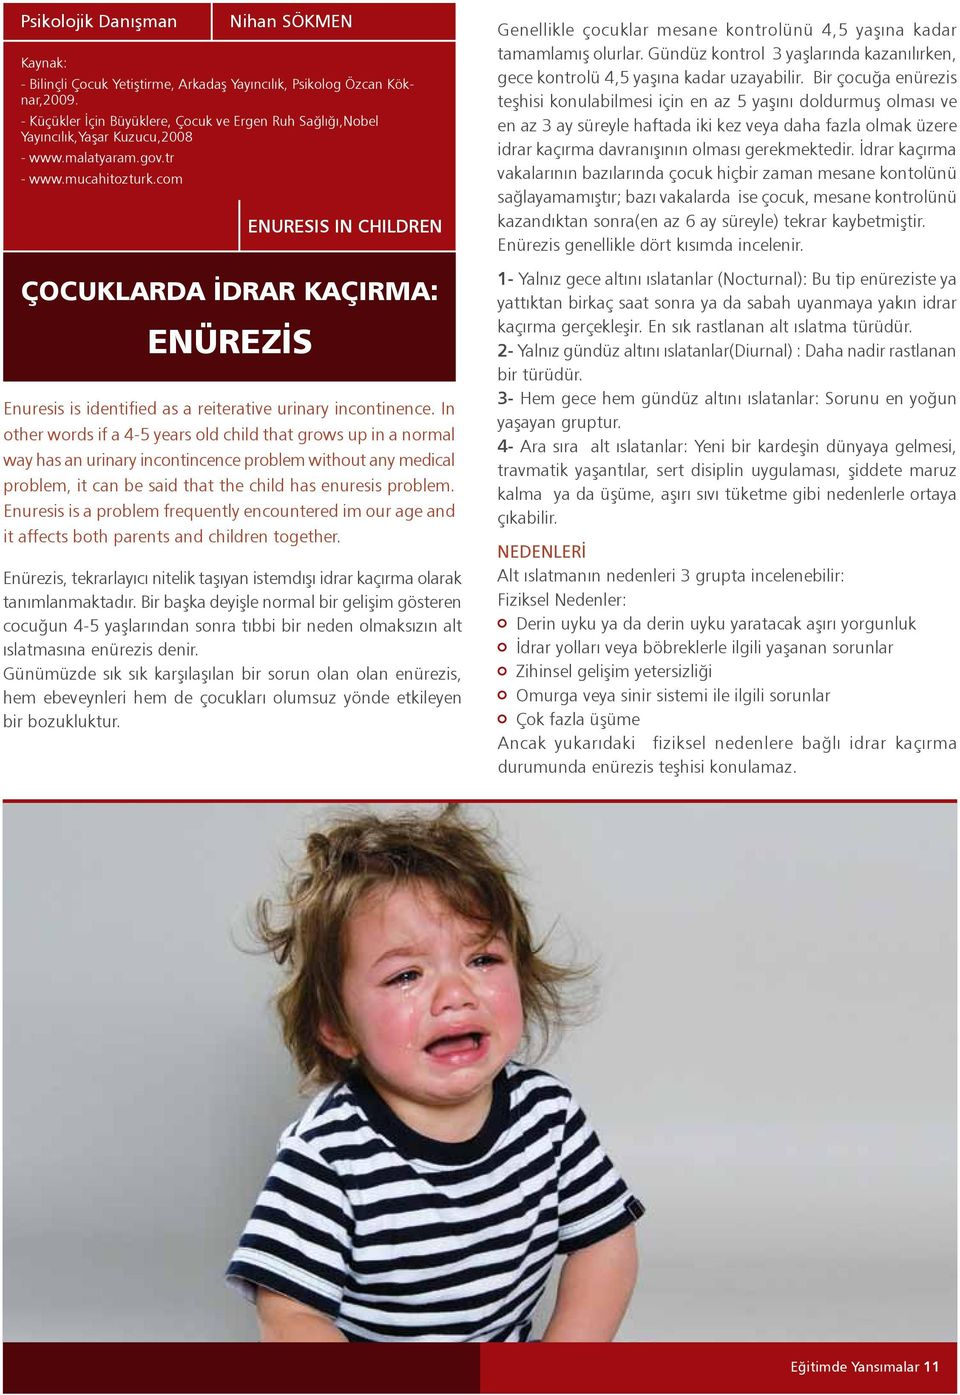 com ENURESIS IN CHILDREN ÇOCUKLARDA İDRAR KAÇIRMA: ENÜREZİS Enuresis is identified as a reiterative urinary incontinence.